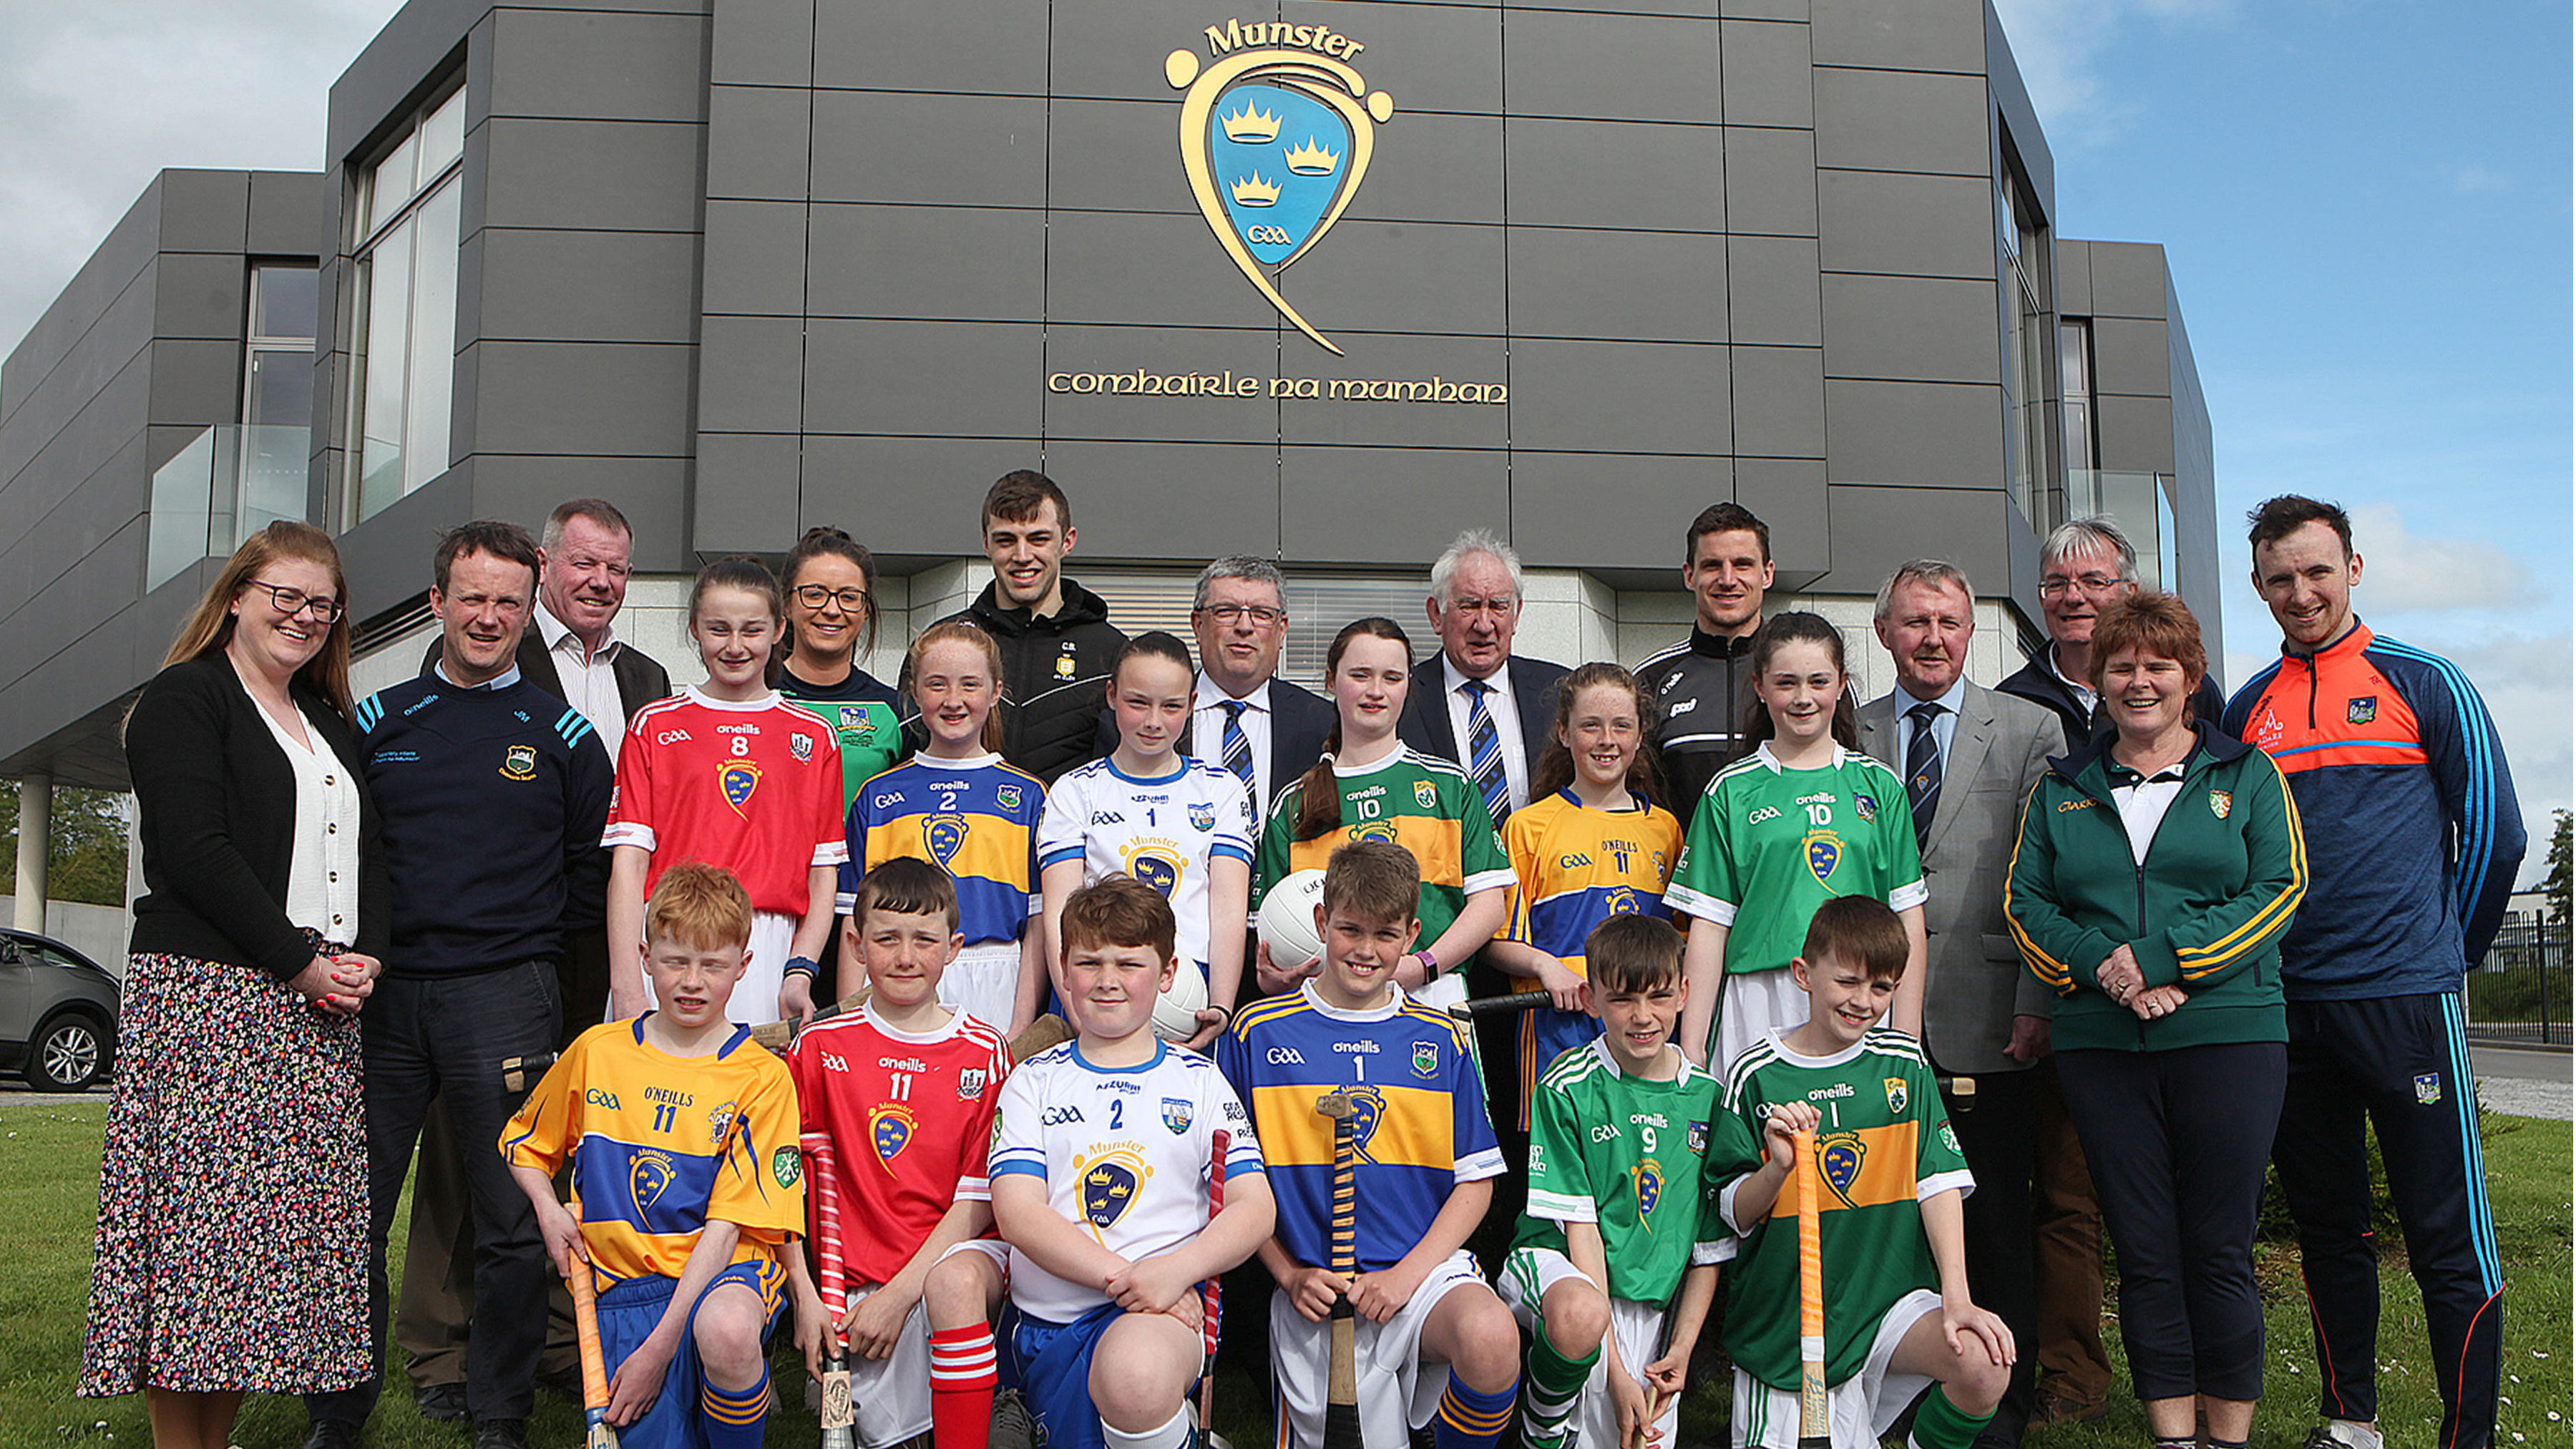 Dreams Come True in the Munster GAA Primary Game